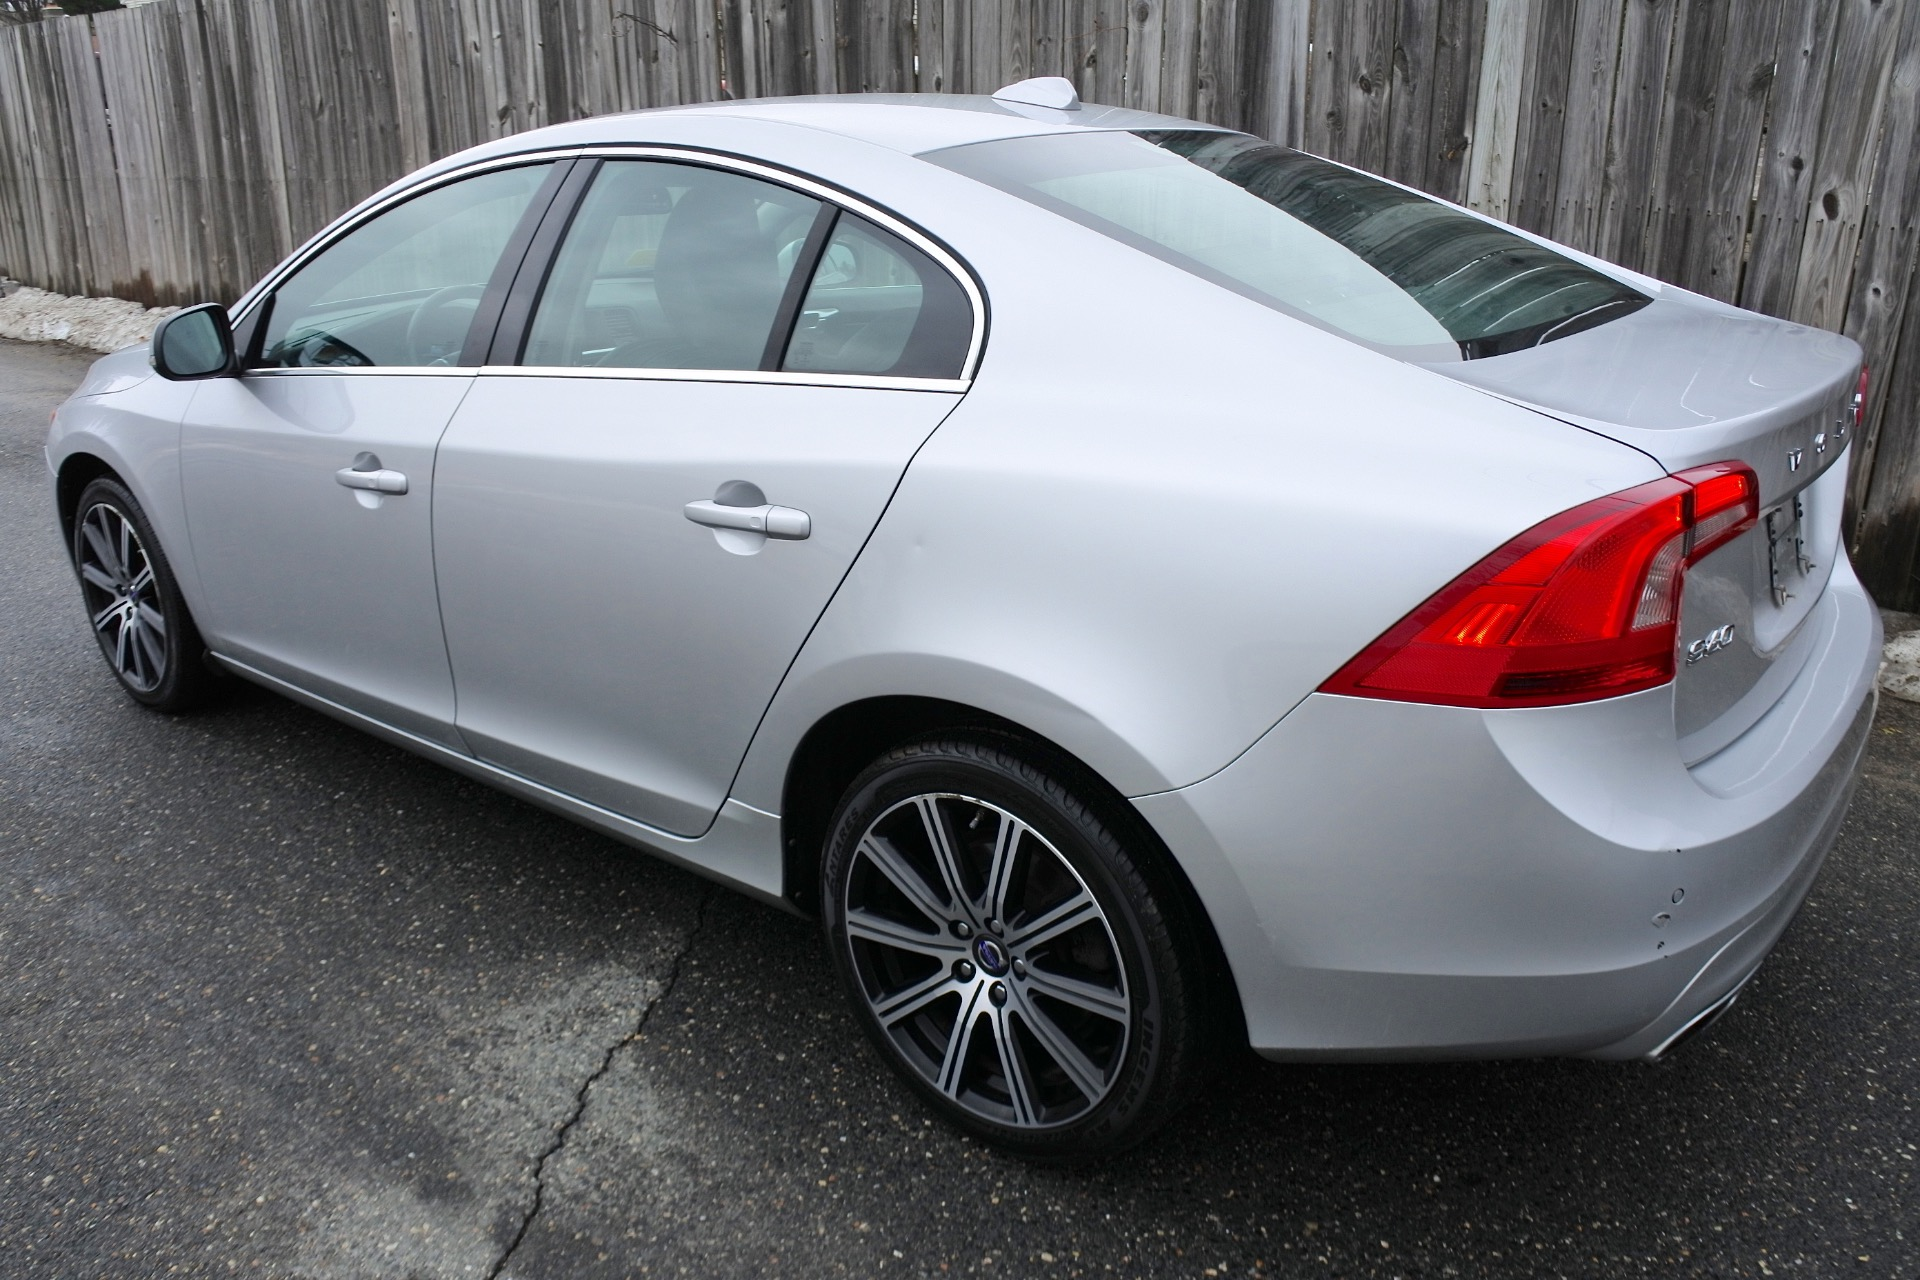 Used 2014 Volvo S60 4dr Sdn T5 Premier AWD Used 2014 Volvo S60 4dr Sdn T5 Premier AWD for sale  at Metro West Motorcars LLC in Shrewsbury MA 3